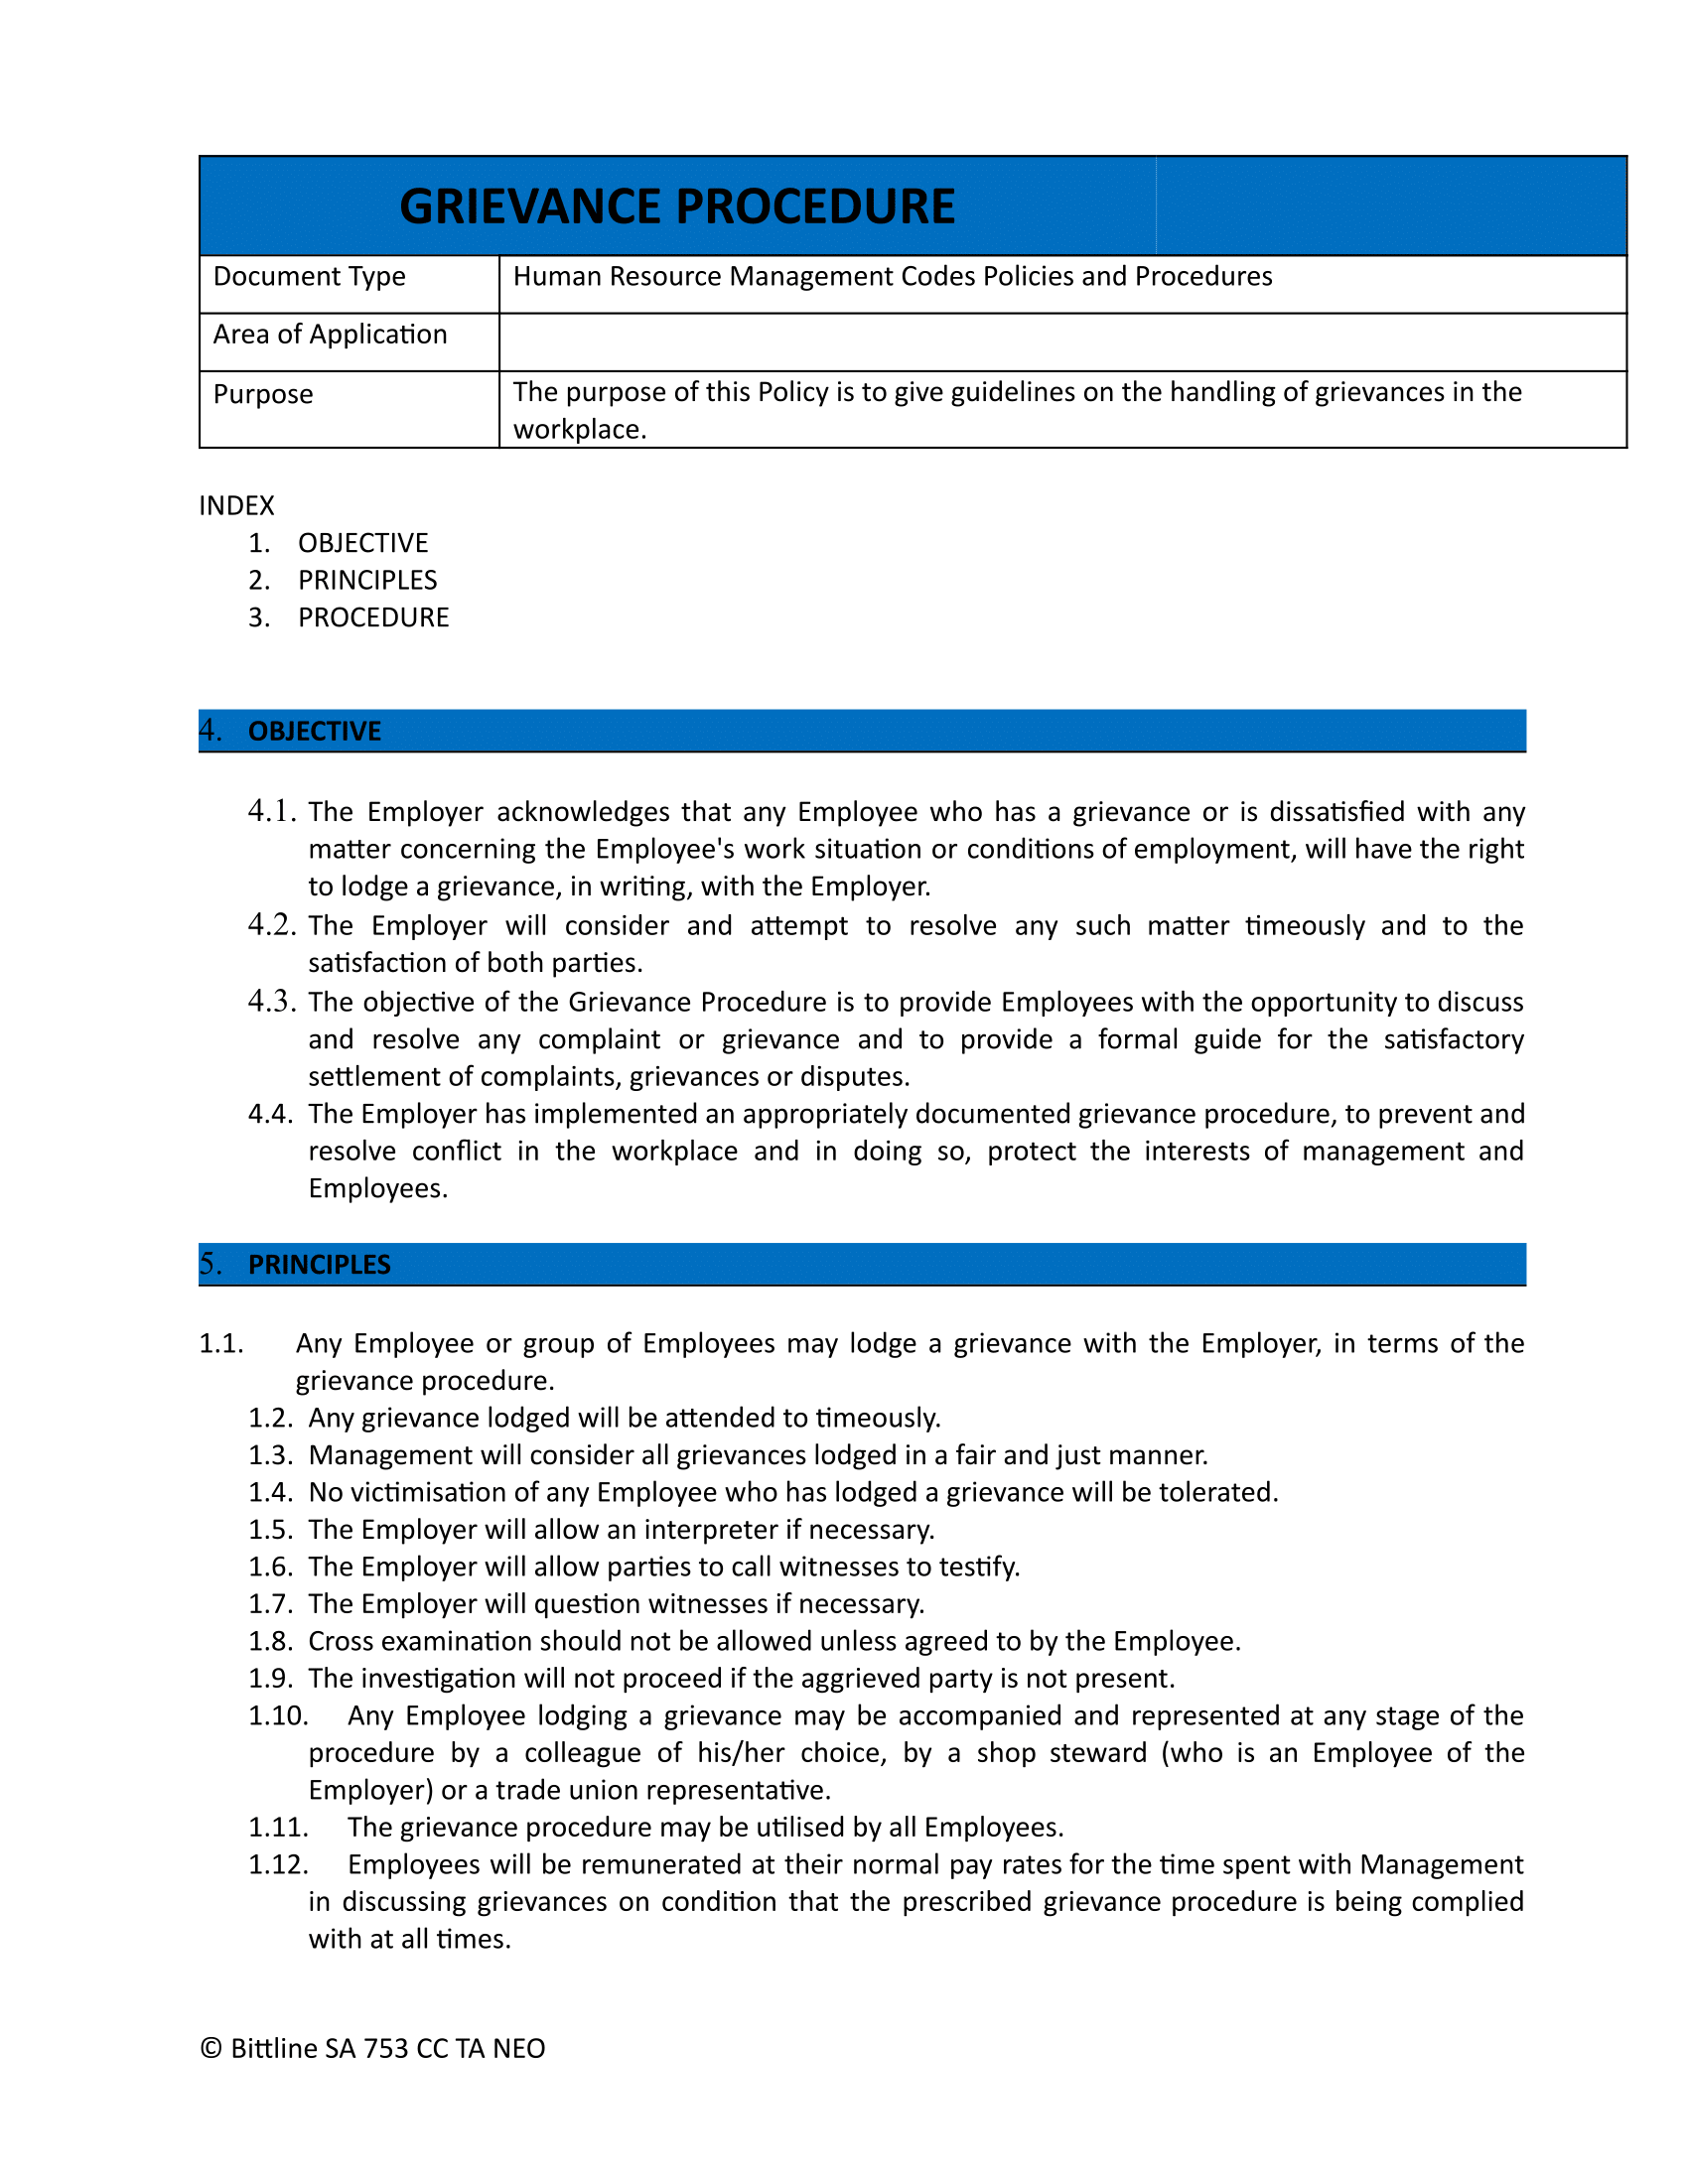 CP-003-GRIEVANCE-POLICY-AND-PROCEDURE-2018 - Google Docs-1